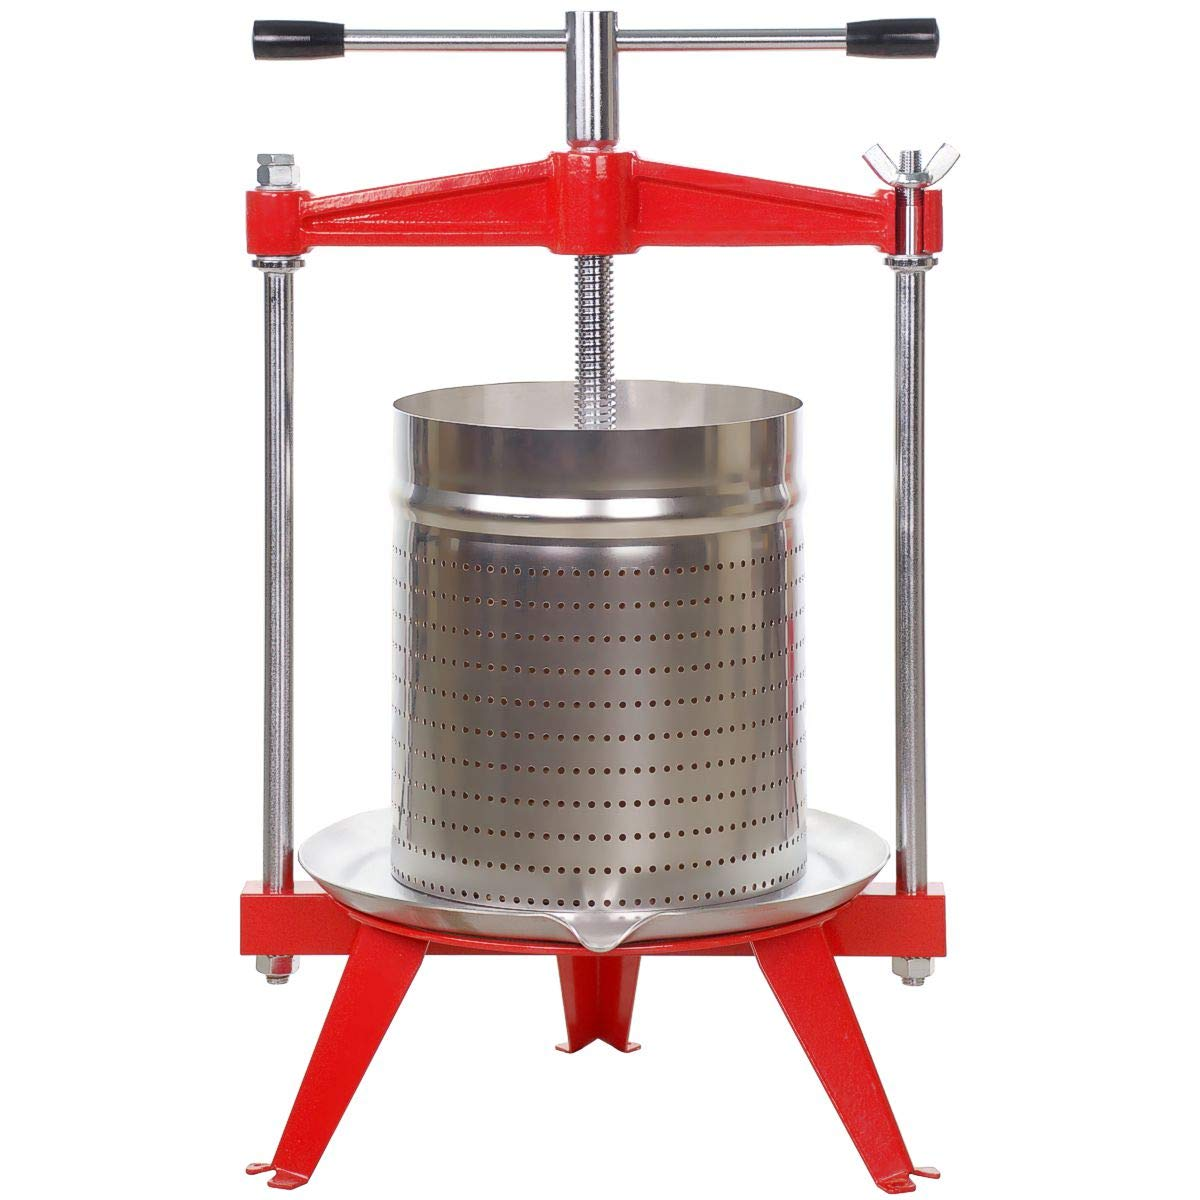 Harvest Bounty Fruit Press 4 Gallon + Stainless Basket by Harvest Bounty